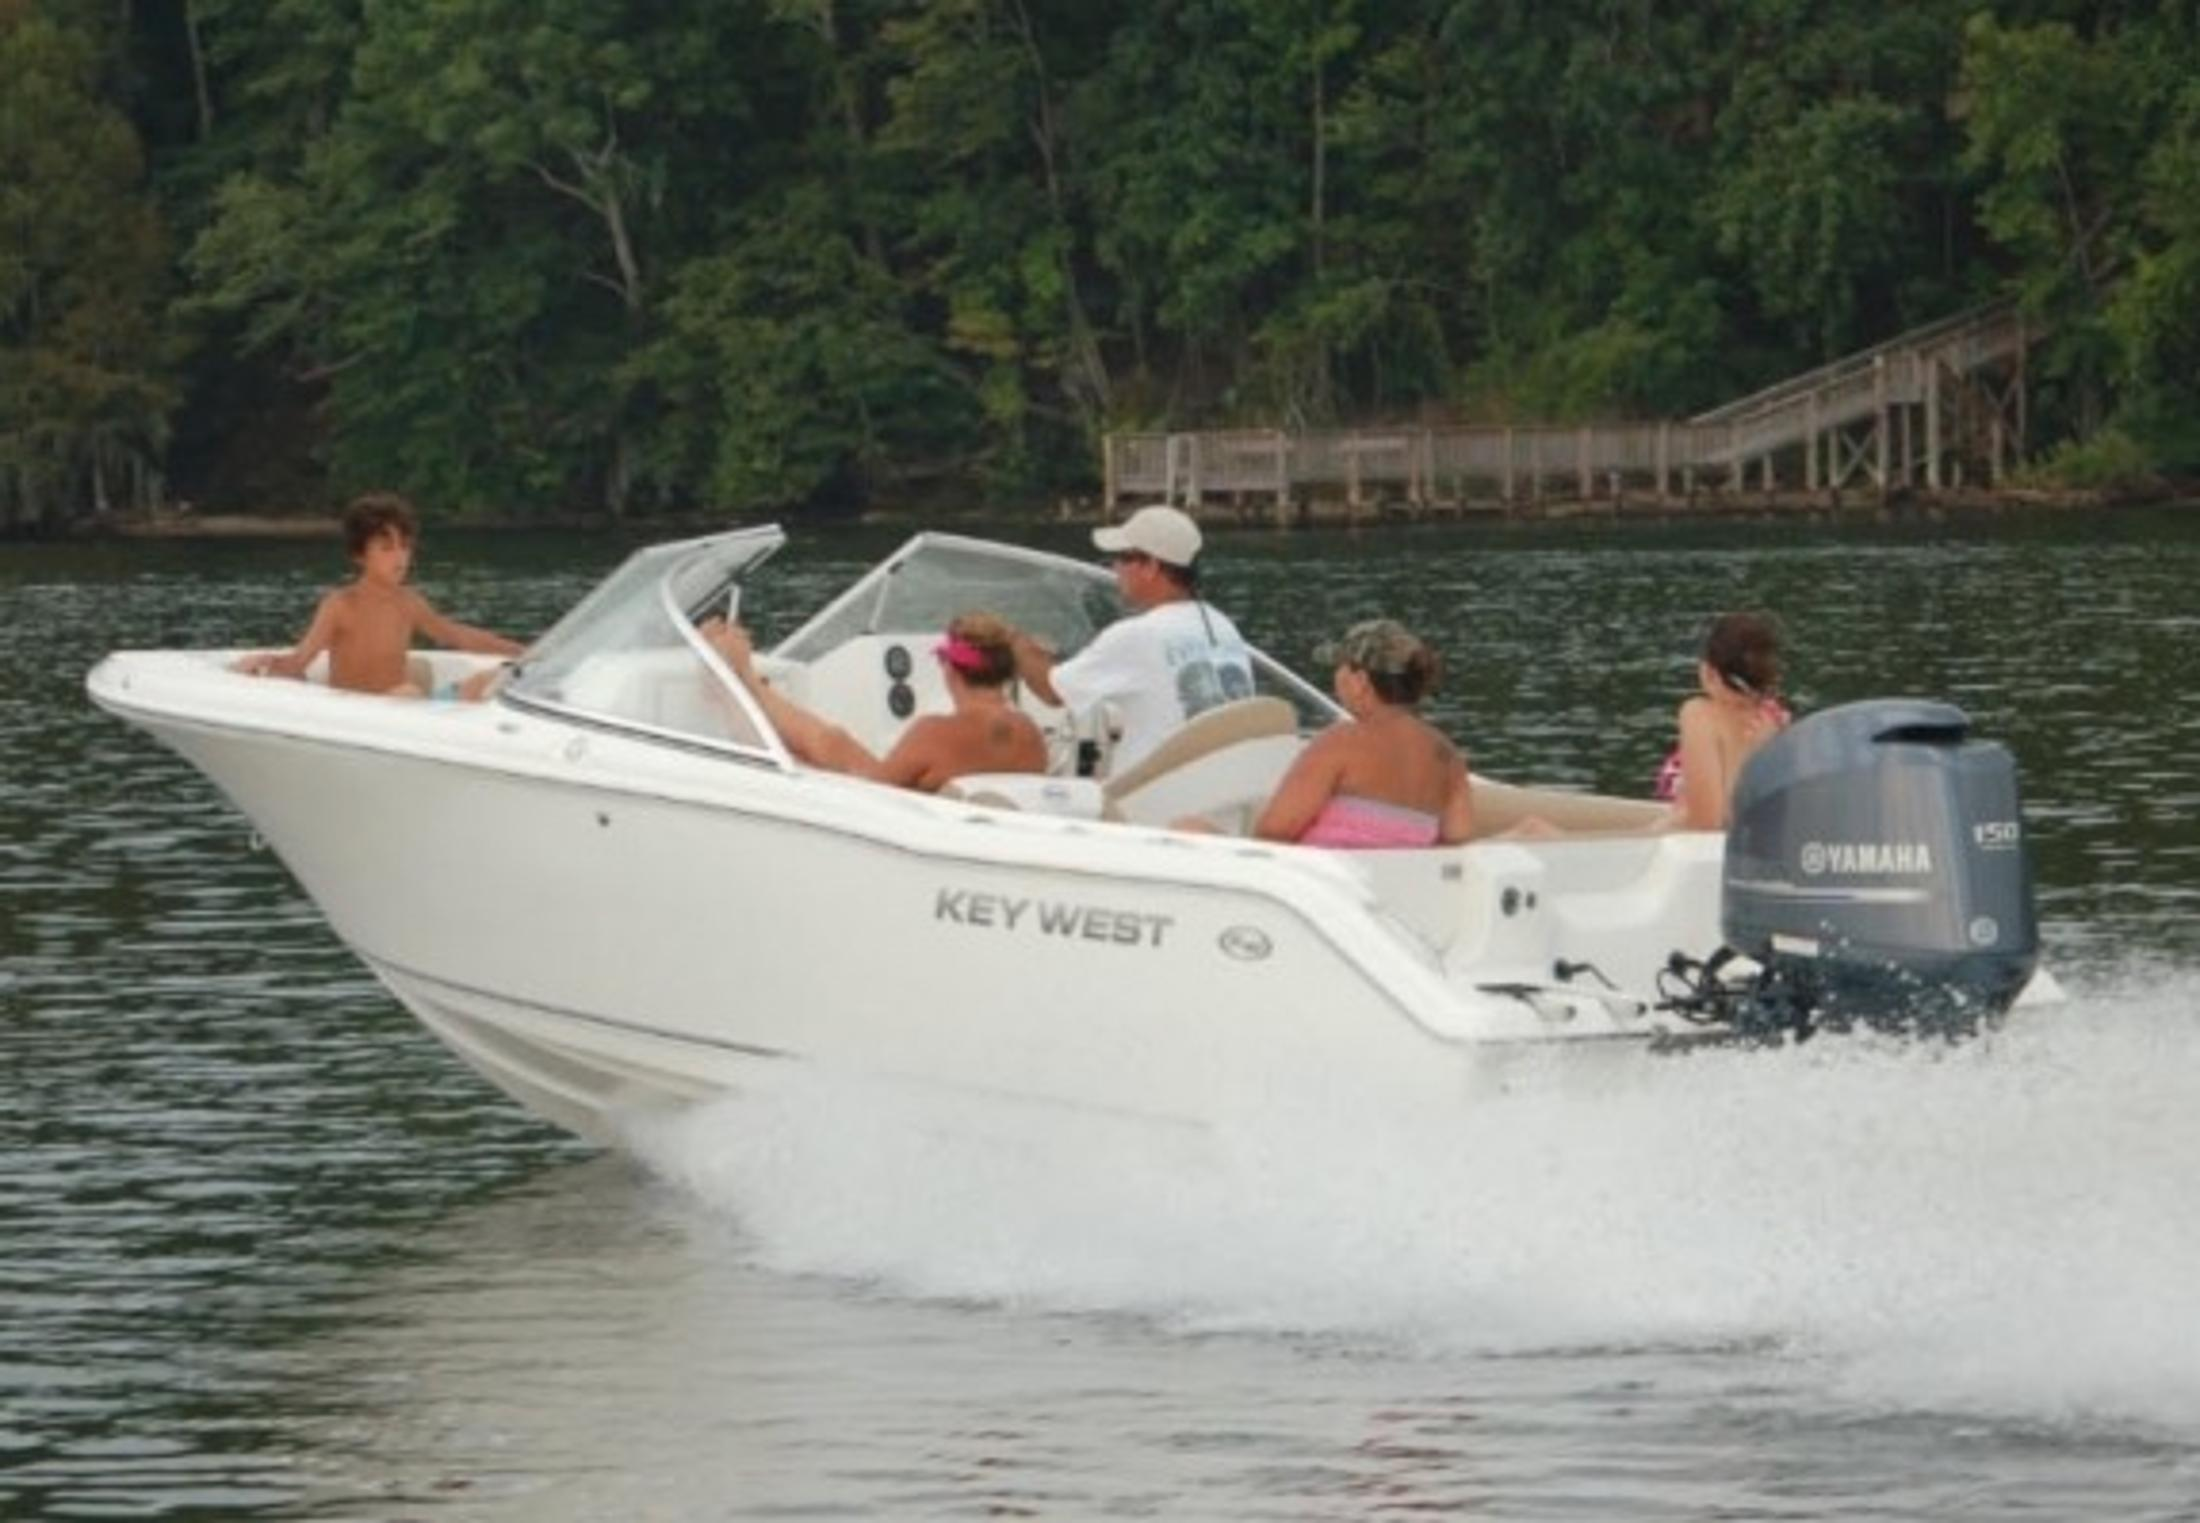 New 2019 Key West 203 Dfs Power Boats Outboard In Perry Fl Stock